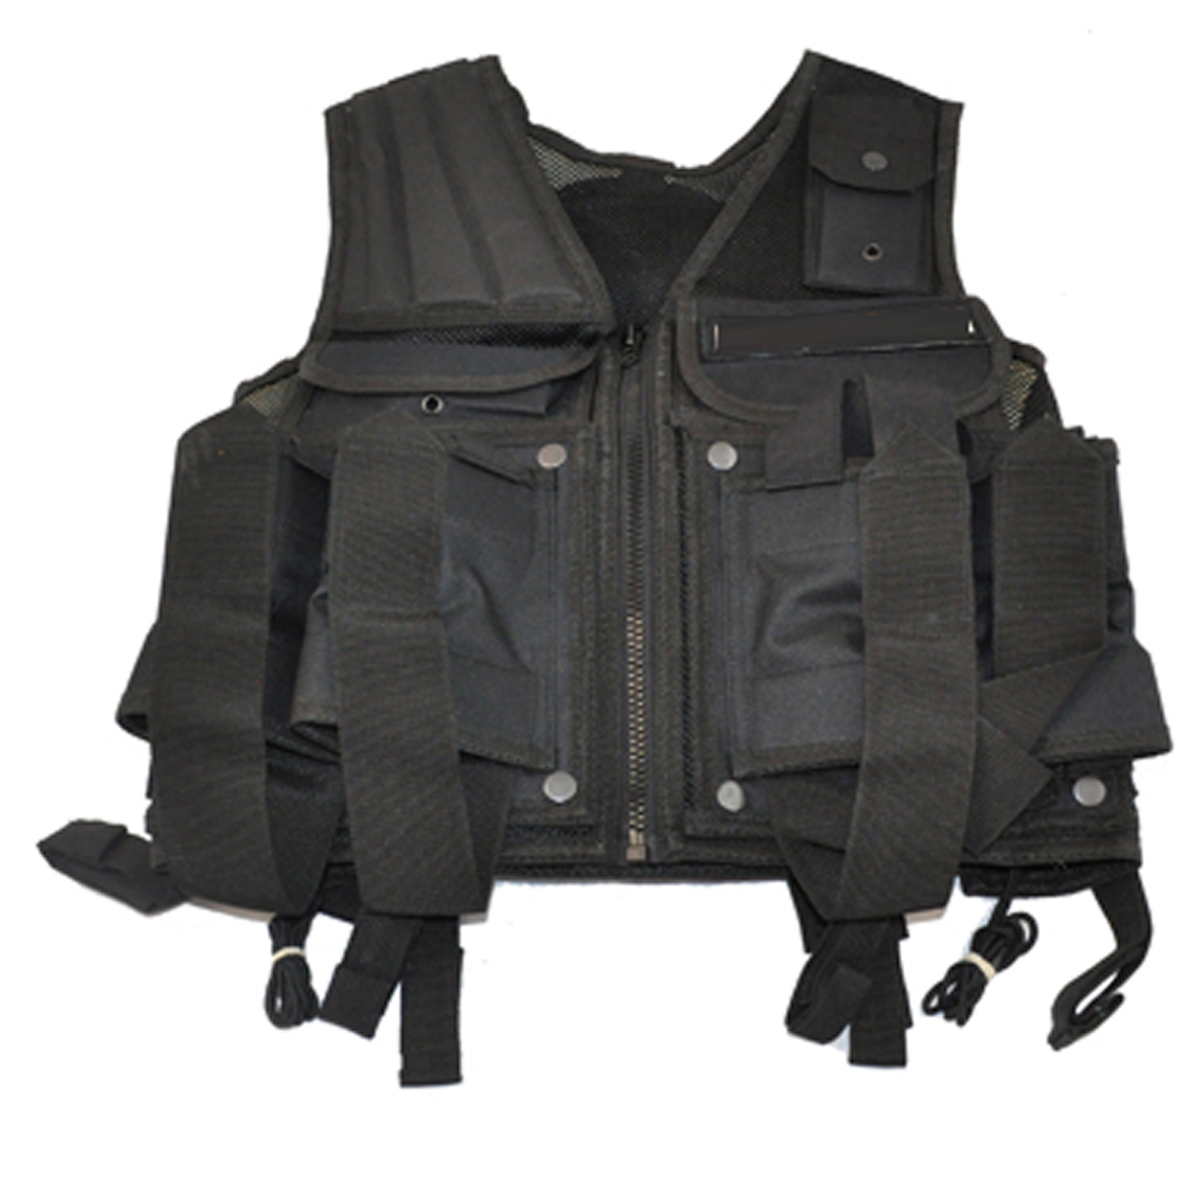 3Skull Paintball Tactical Web Vest w Tank Pouch Black by 3Skull